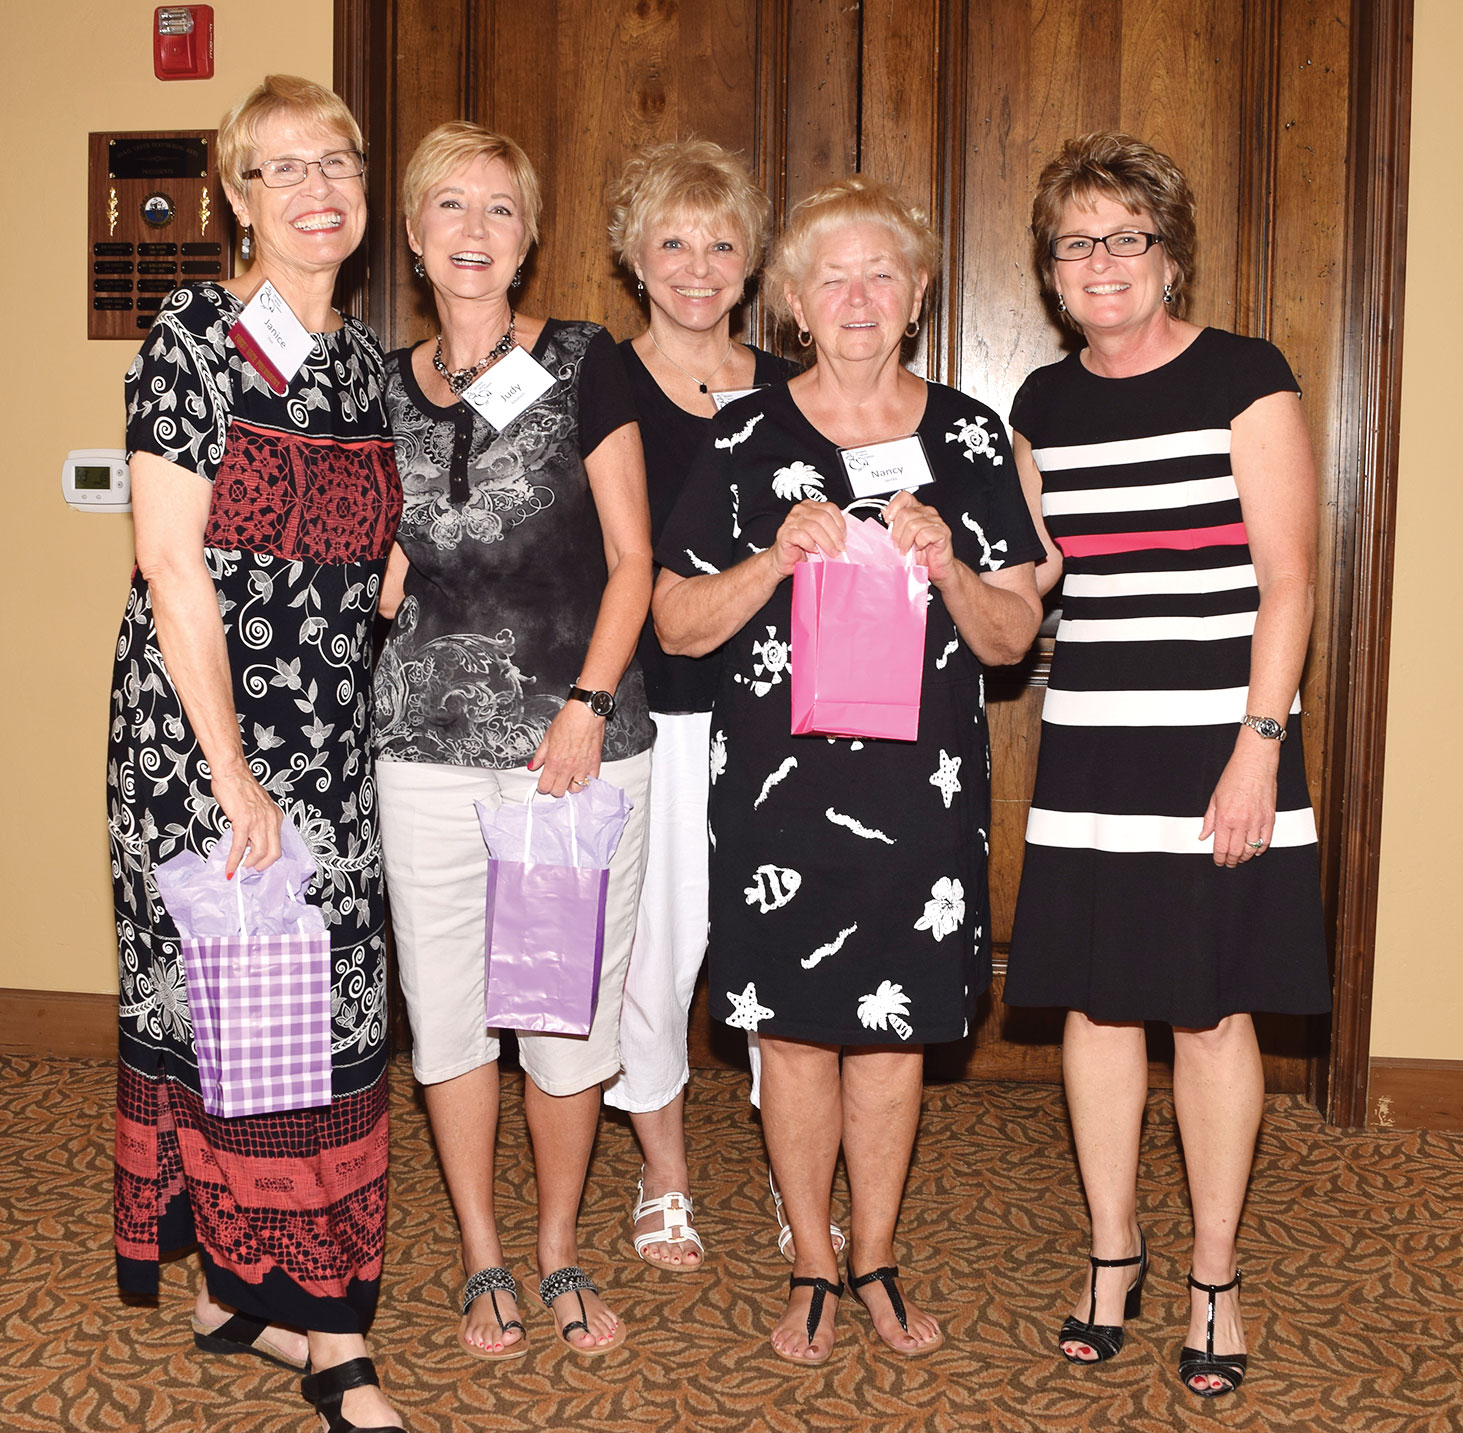 Happy door prize winners congratulated by Judge Royal. From left: Janice Pell, Judy Madison, Nancy Wilson, Nancy Jacobs and Judge Lisa Royal.